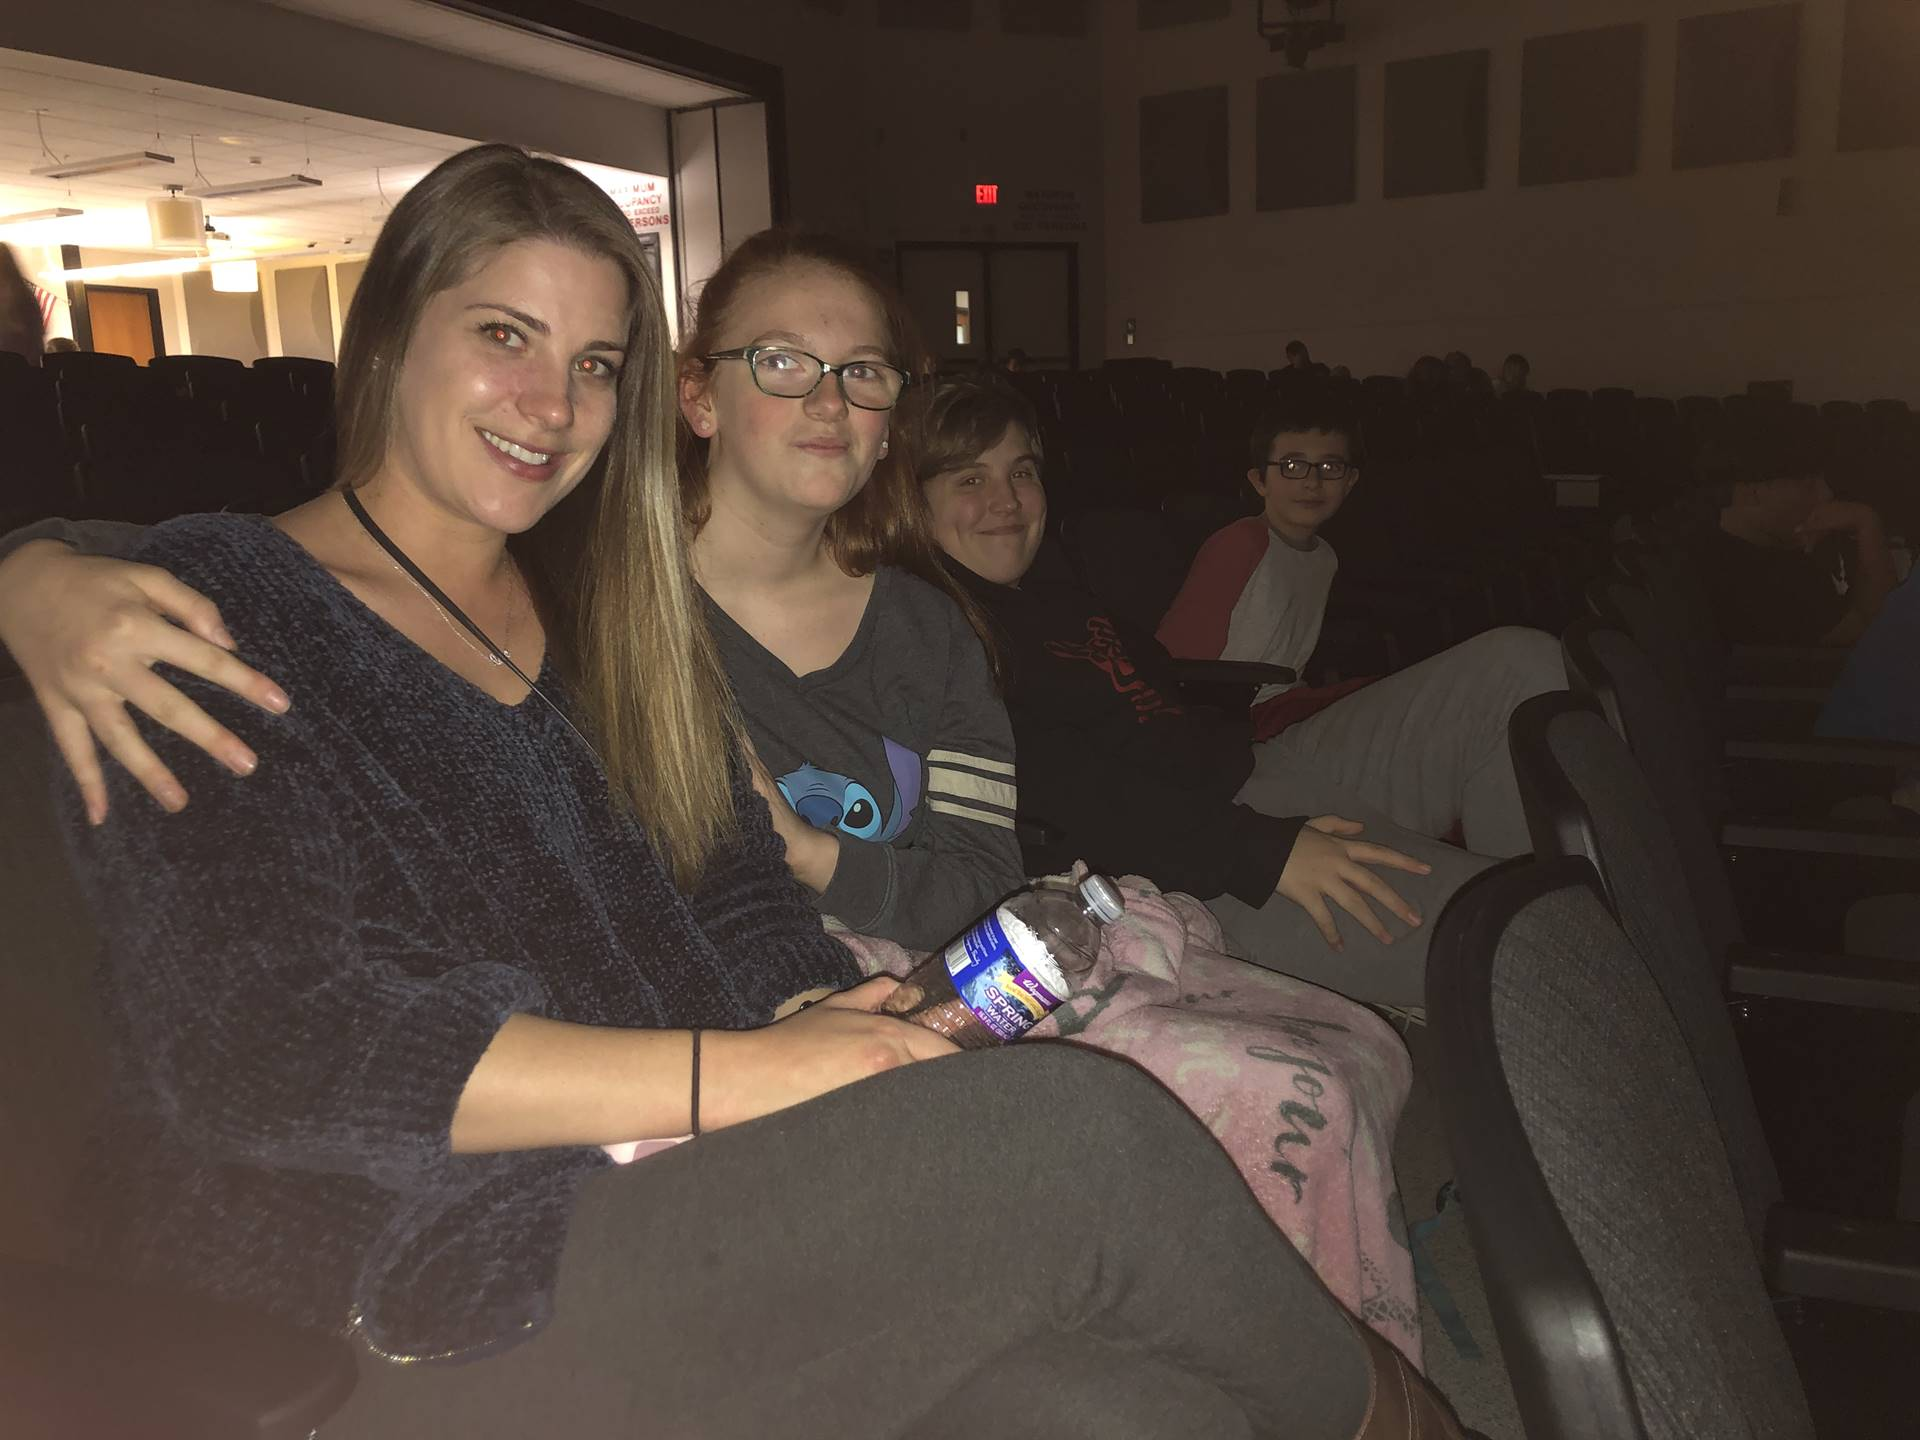 A group of middle school students sitting in auditorium seats with a woman